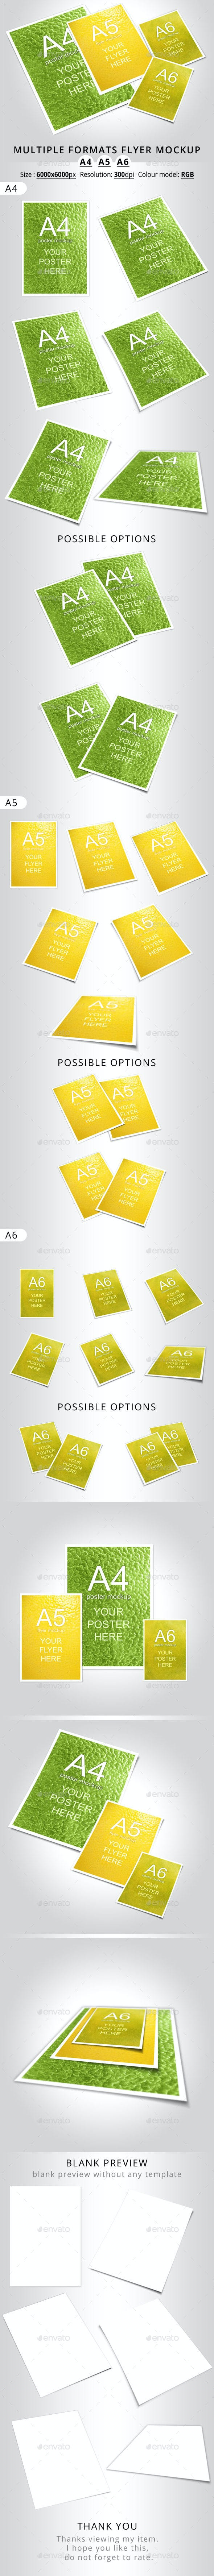 multiple formats flyer mockup a4 a5 a6 by oloreon graphicriver